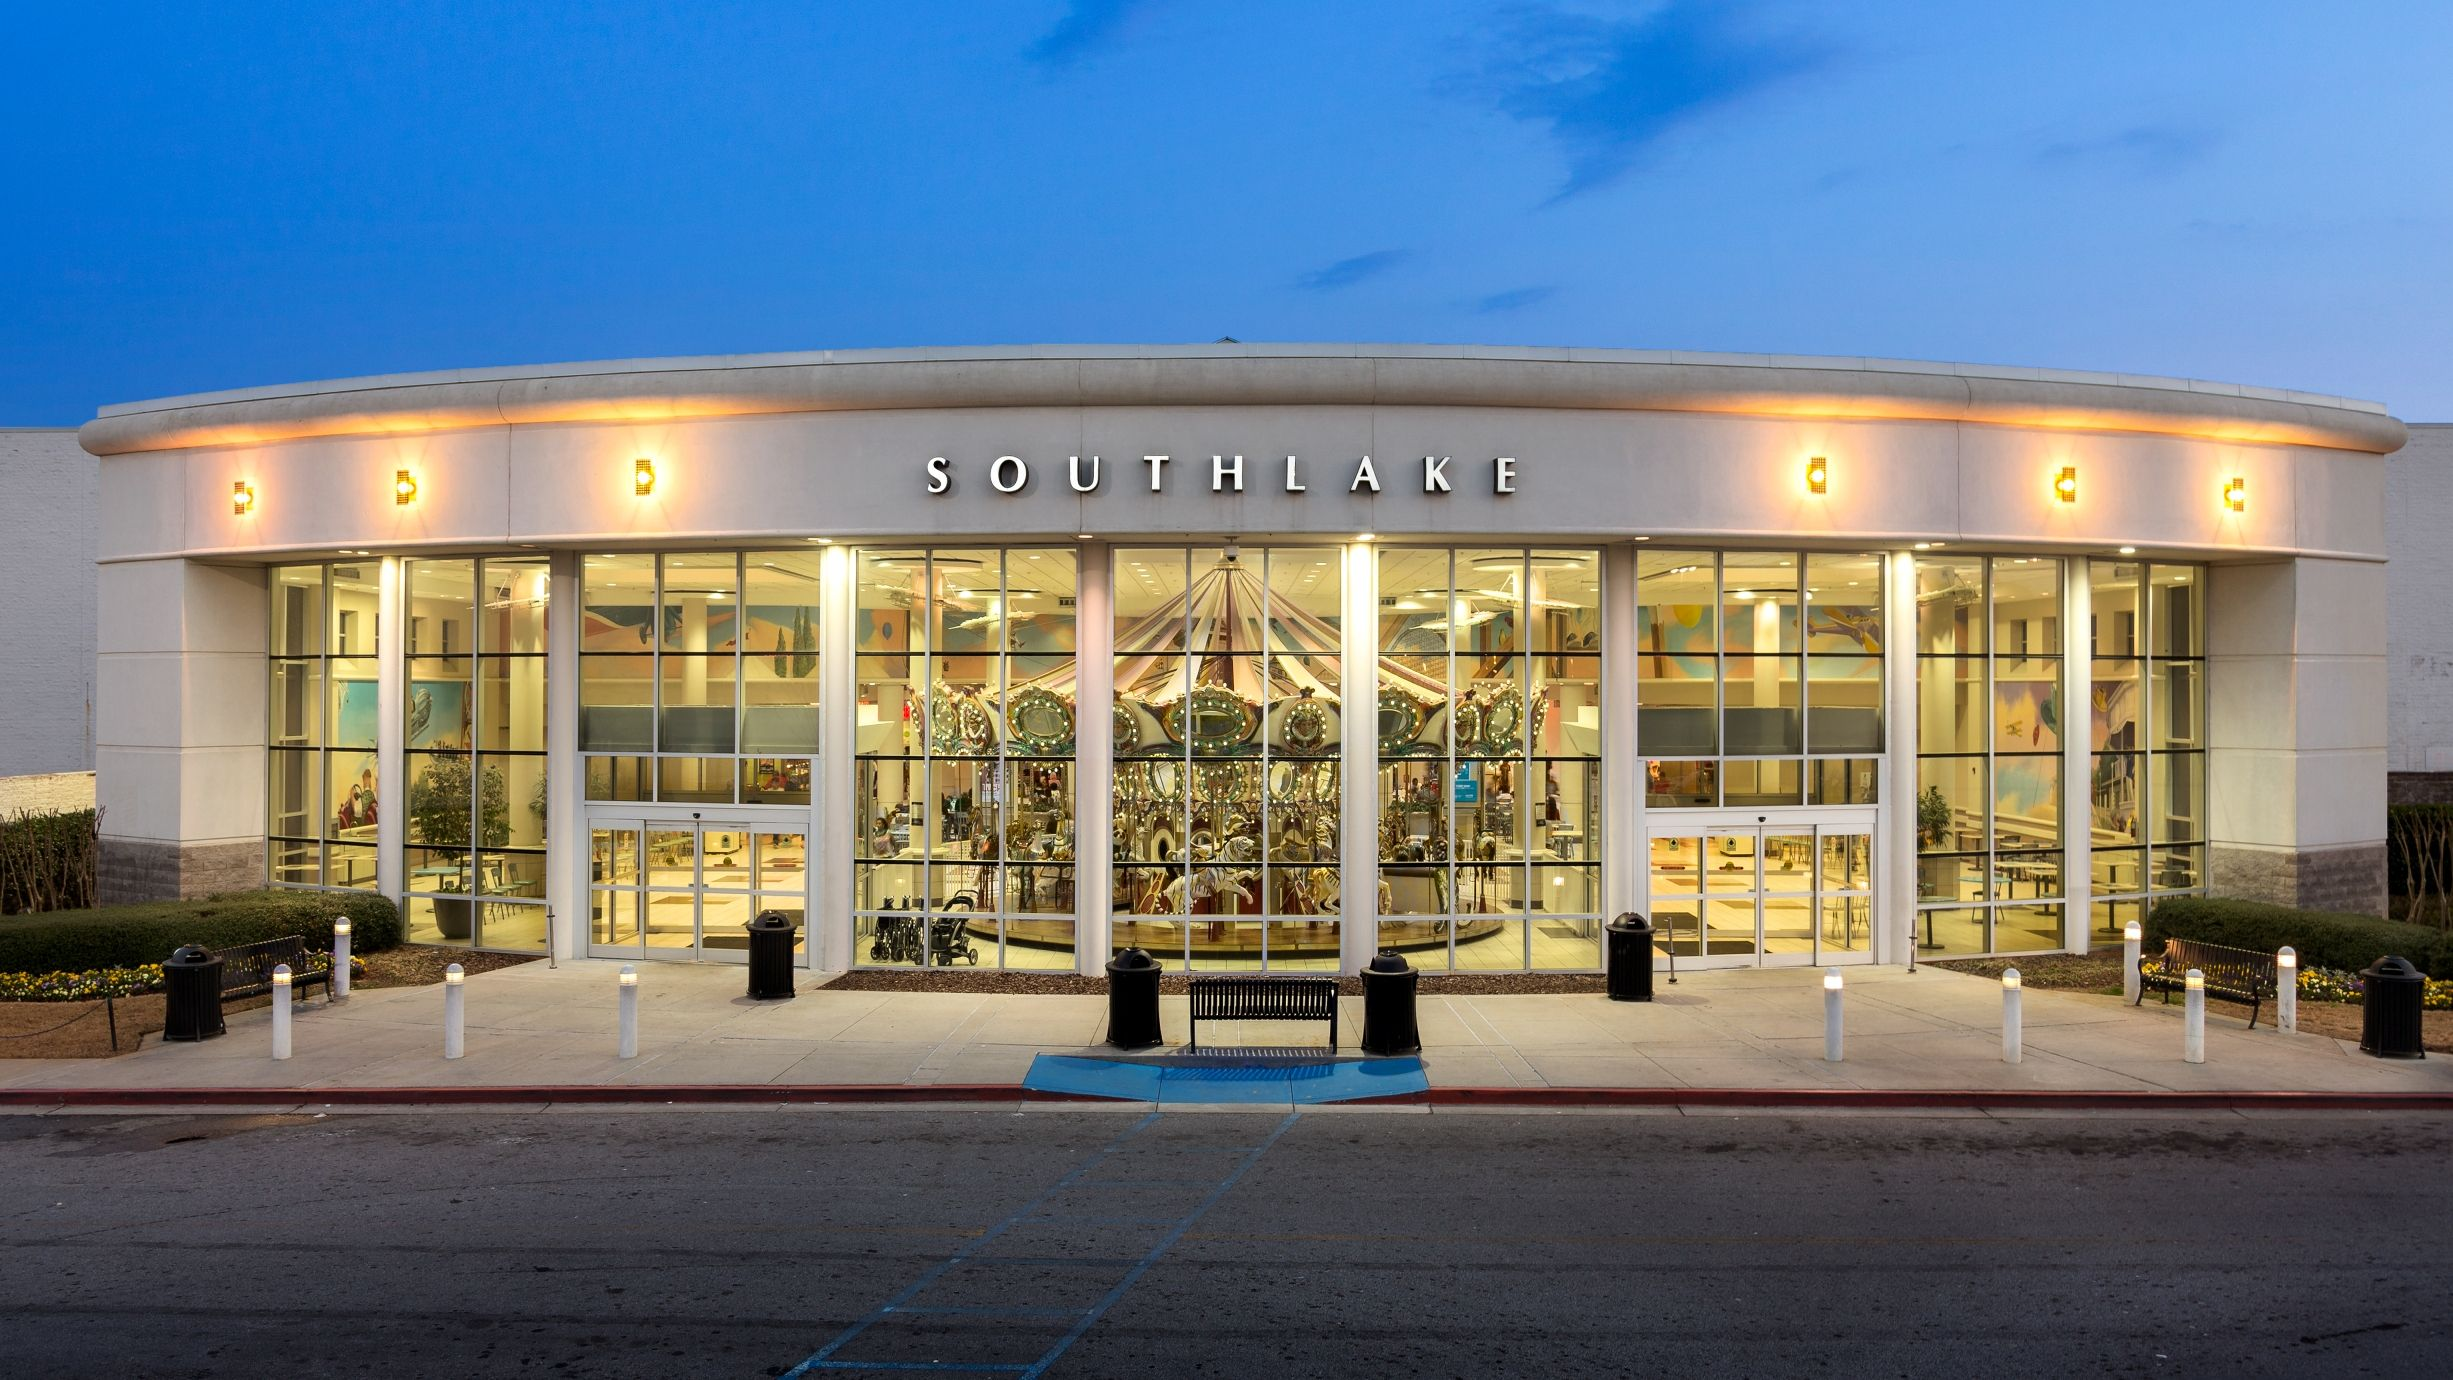 Southlake Mall Qualityinn Merrillville In Indiana Hotel Travel Attractions